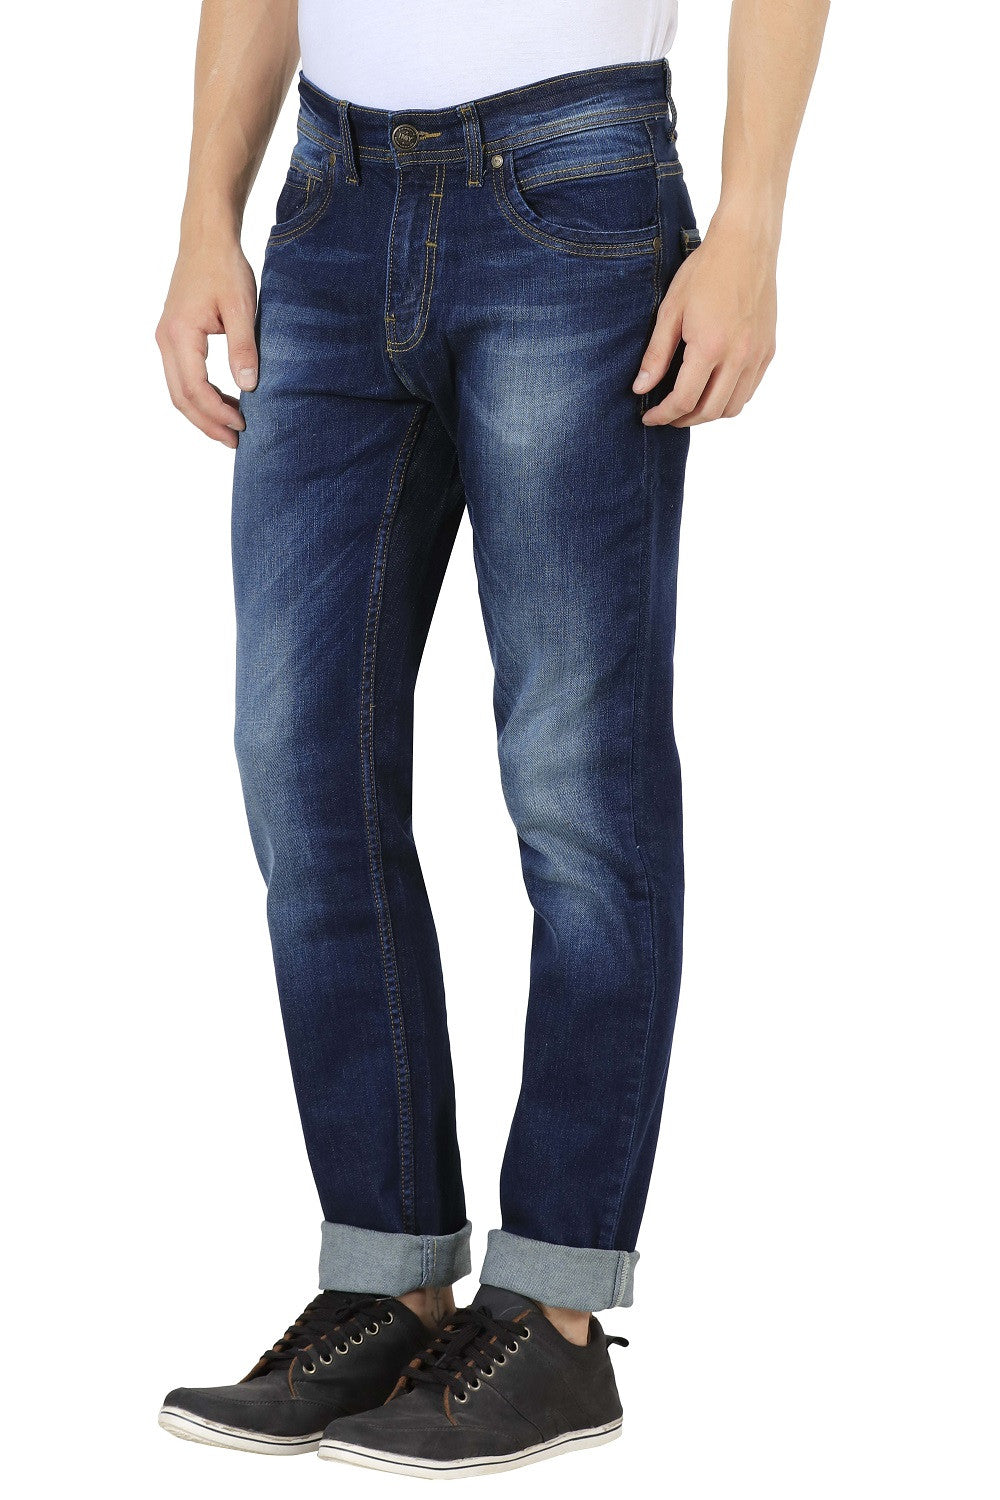 IMYOUNG Tin Blue Slim Fit Jeans